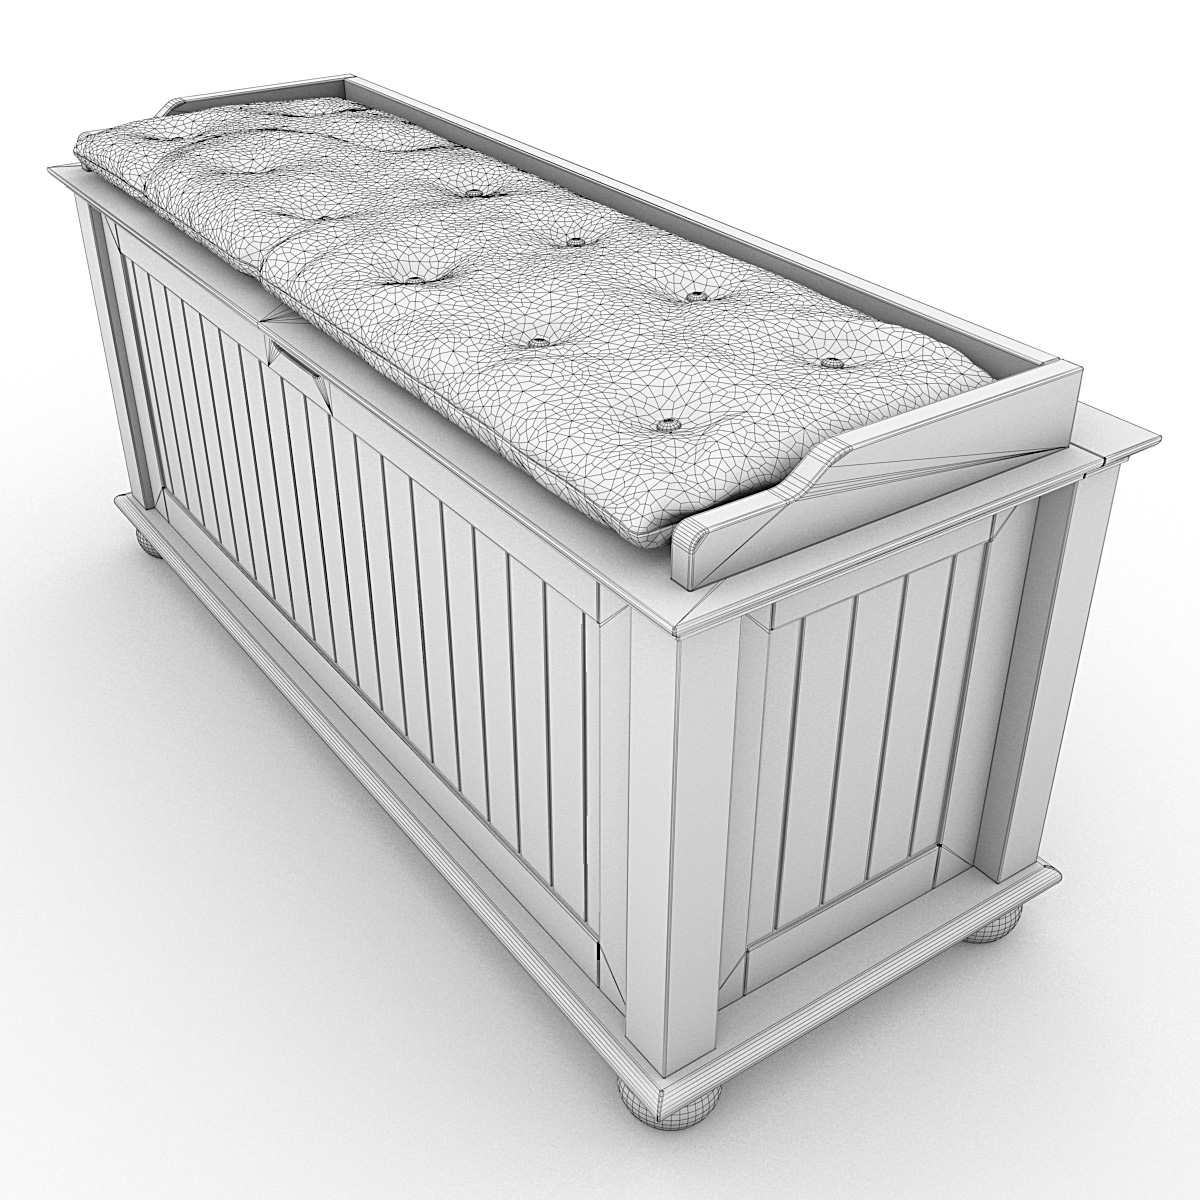 Storage bench with cushion 02 3d model max obj 3ds lwo lw lws Storage bench cushion